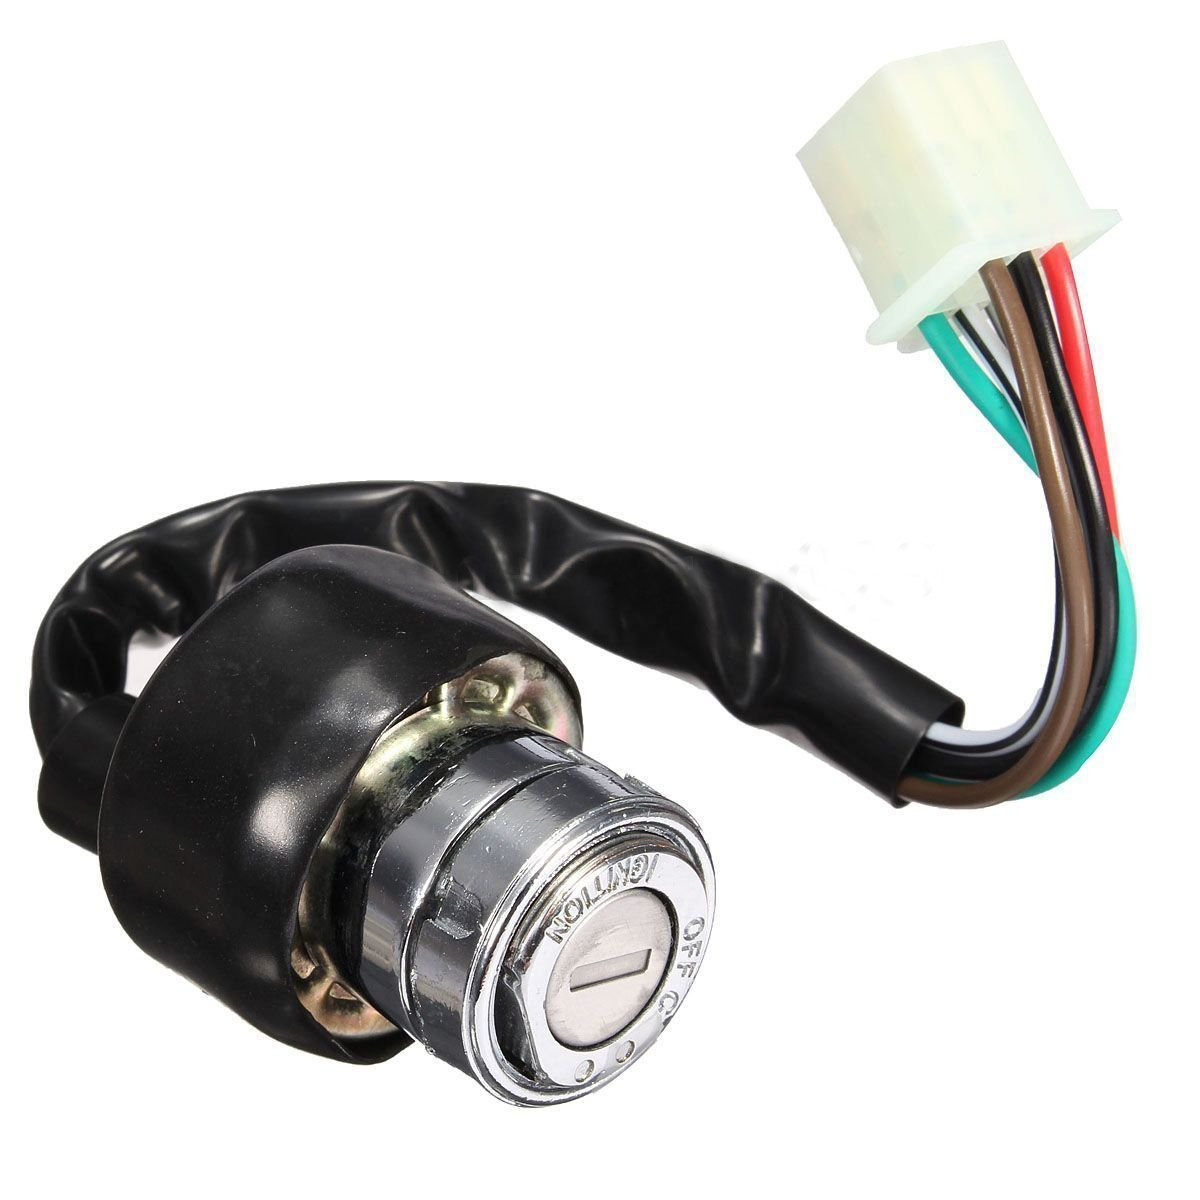 Ignition Switch - TOOGOO(R) Universal 3 Position Car Motorcycle Scooter Go-Kart 6 Wire Ignition Switch 2 Key SPAGT45274